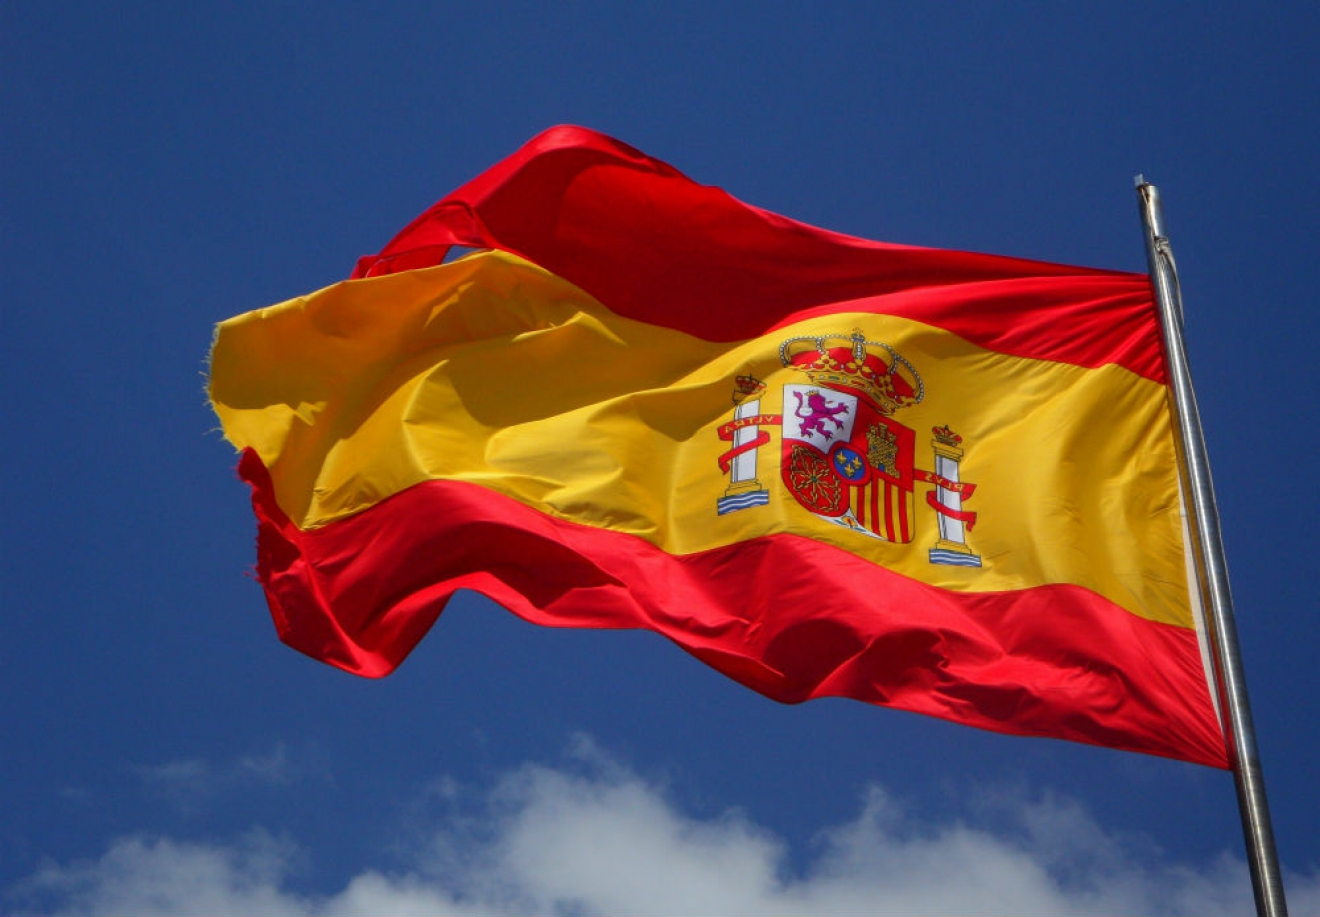 Update on Emergency Medicine as primary specialty in Spain